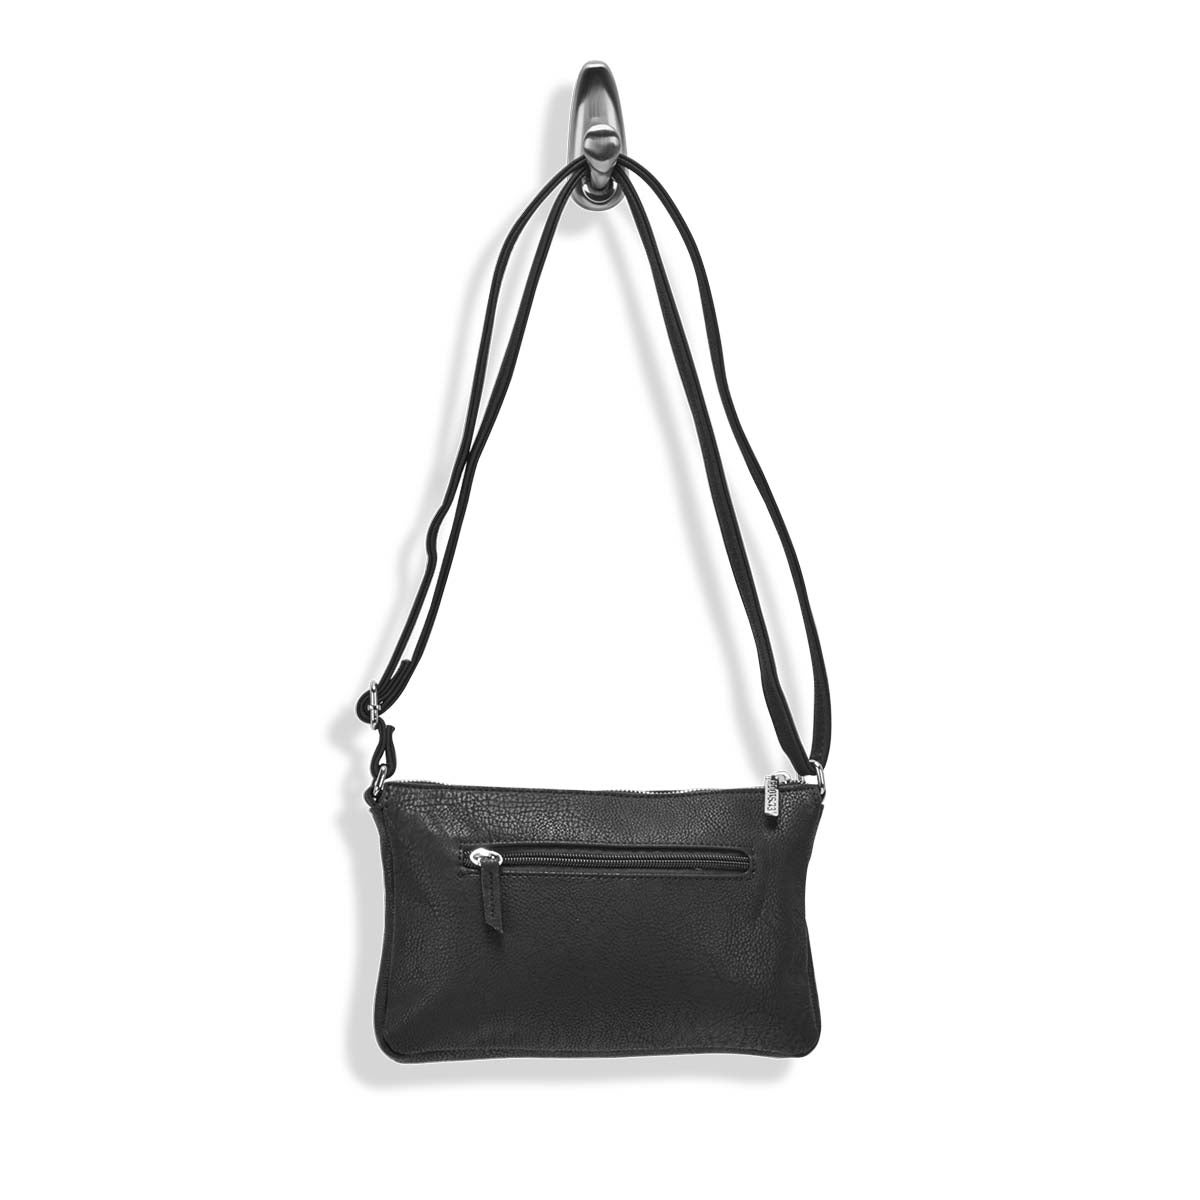 Lds Roots73 black east/west crossbody